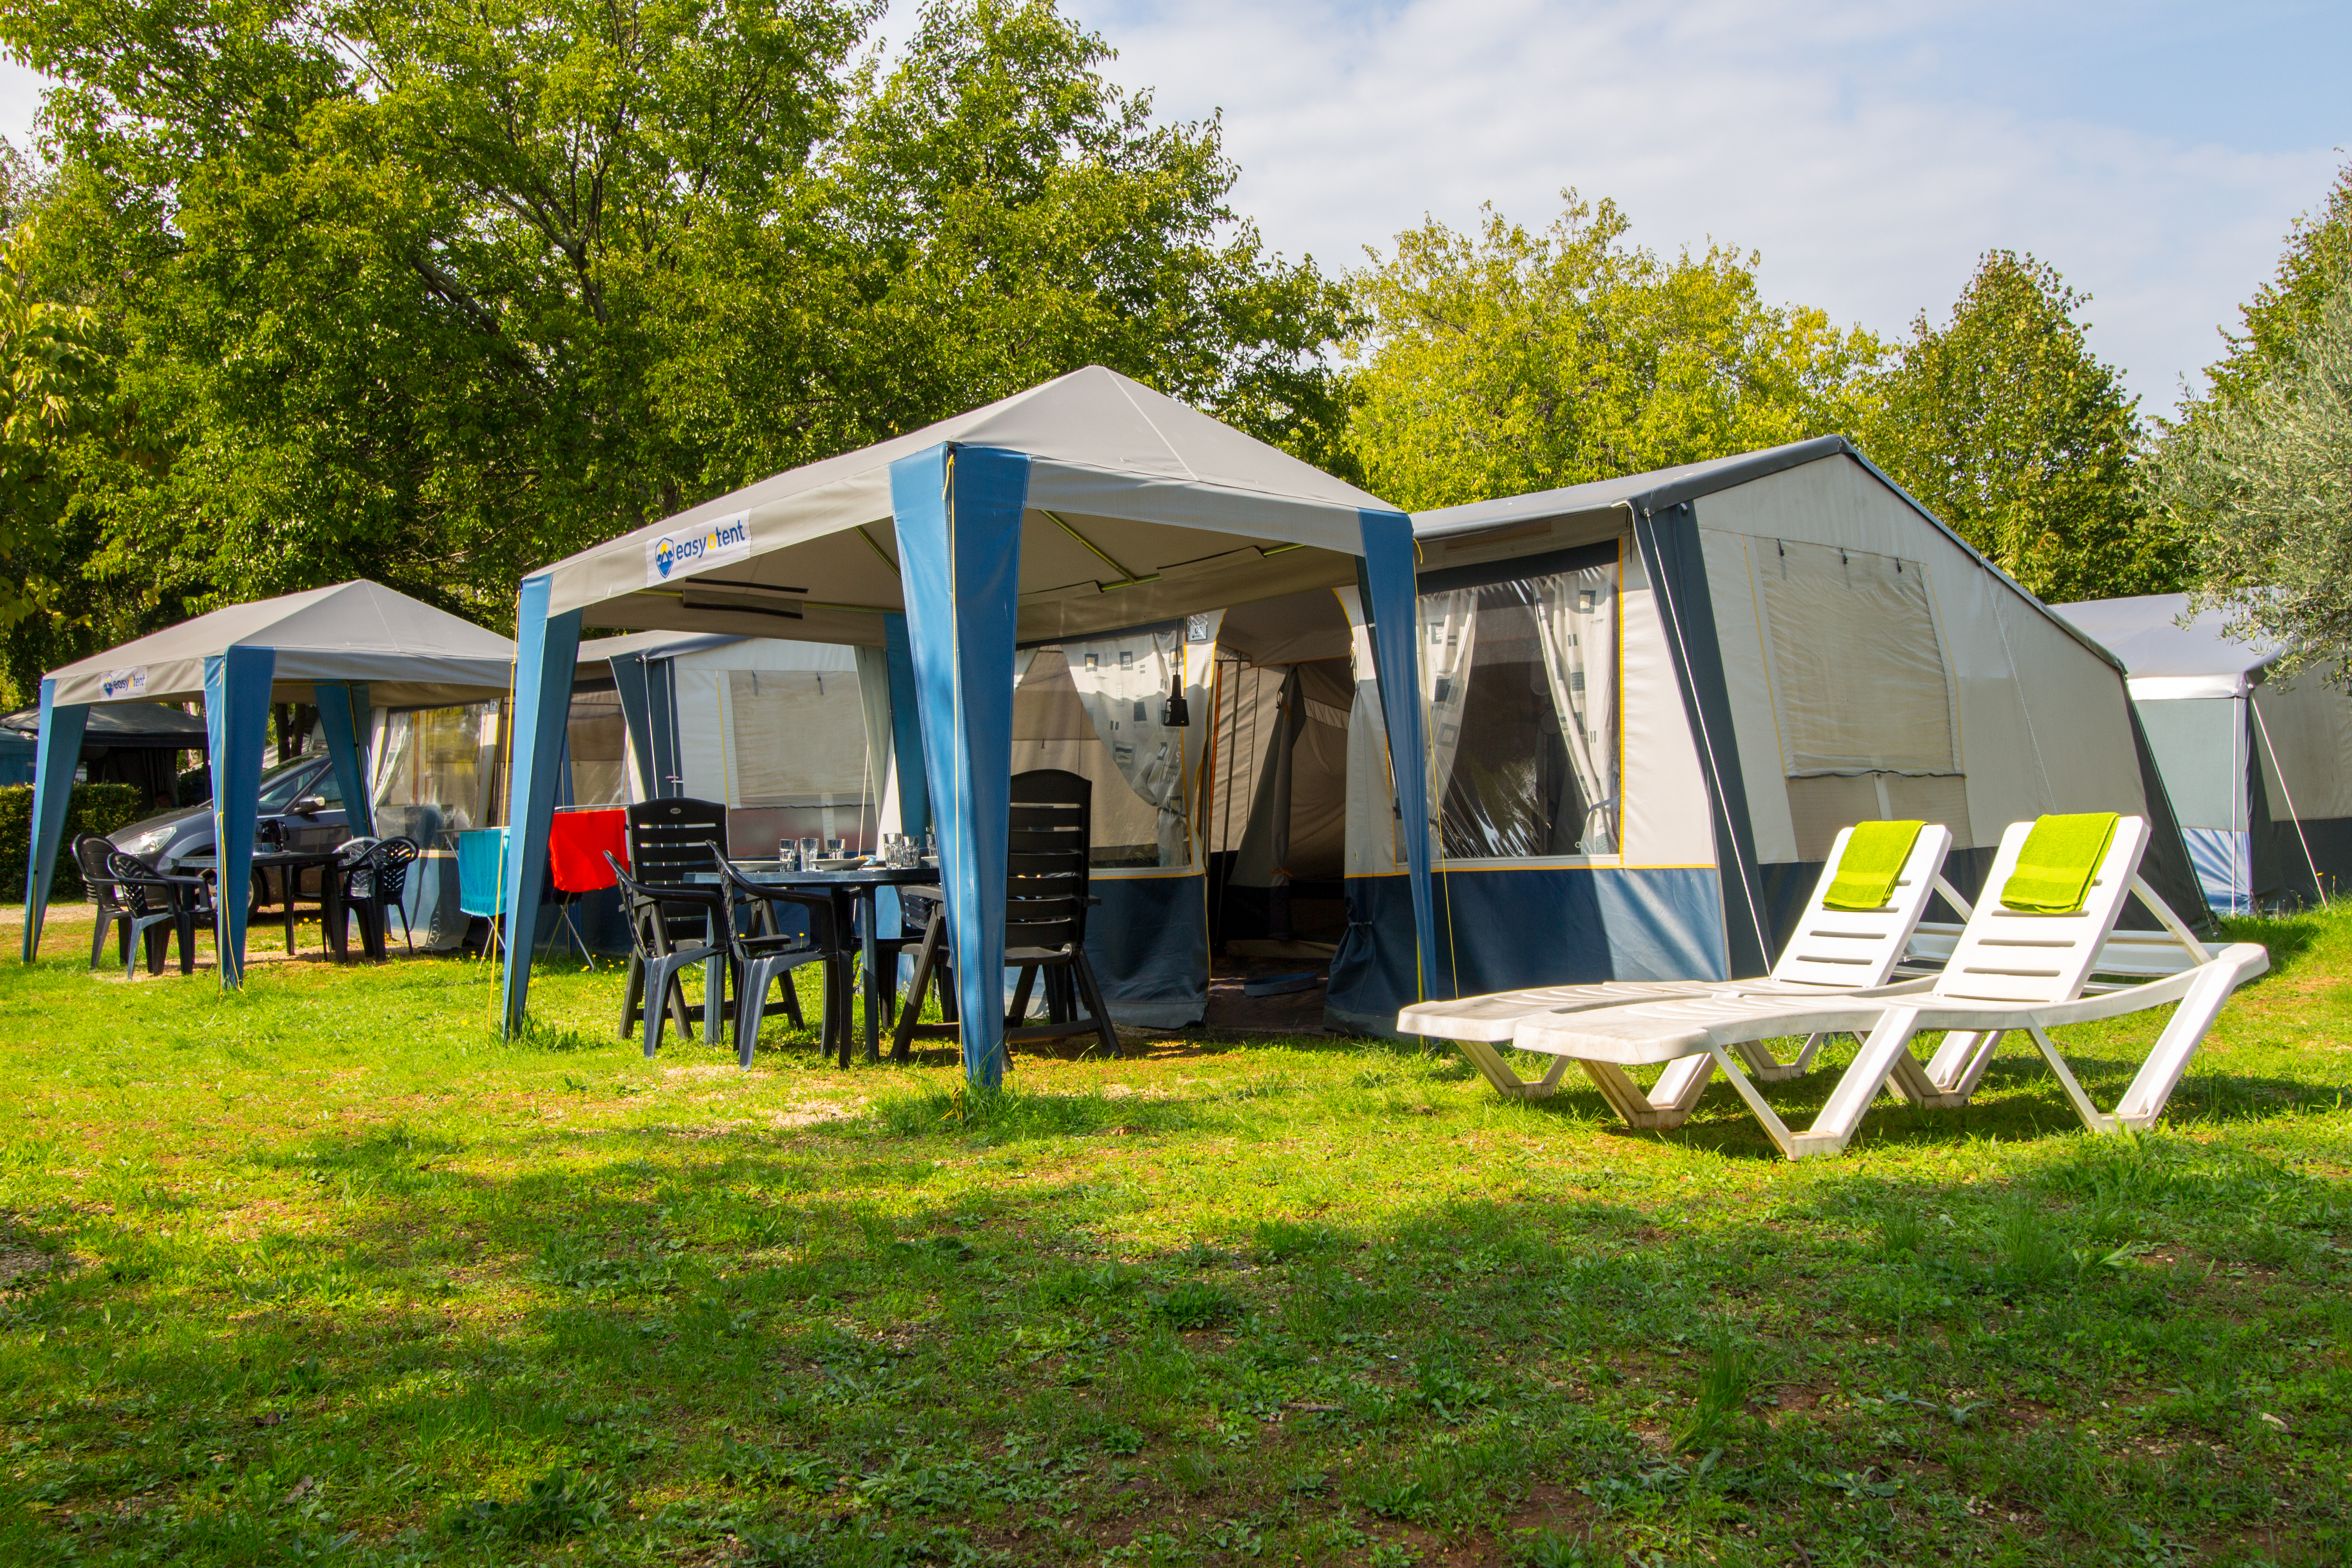 Bungalow tent & Luxury camping in Croatia? Book a bungalow tent